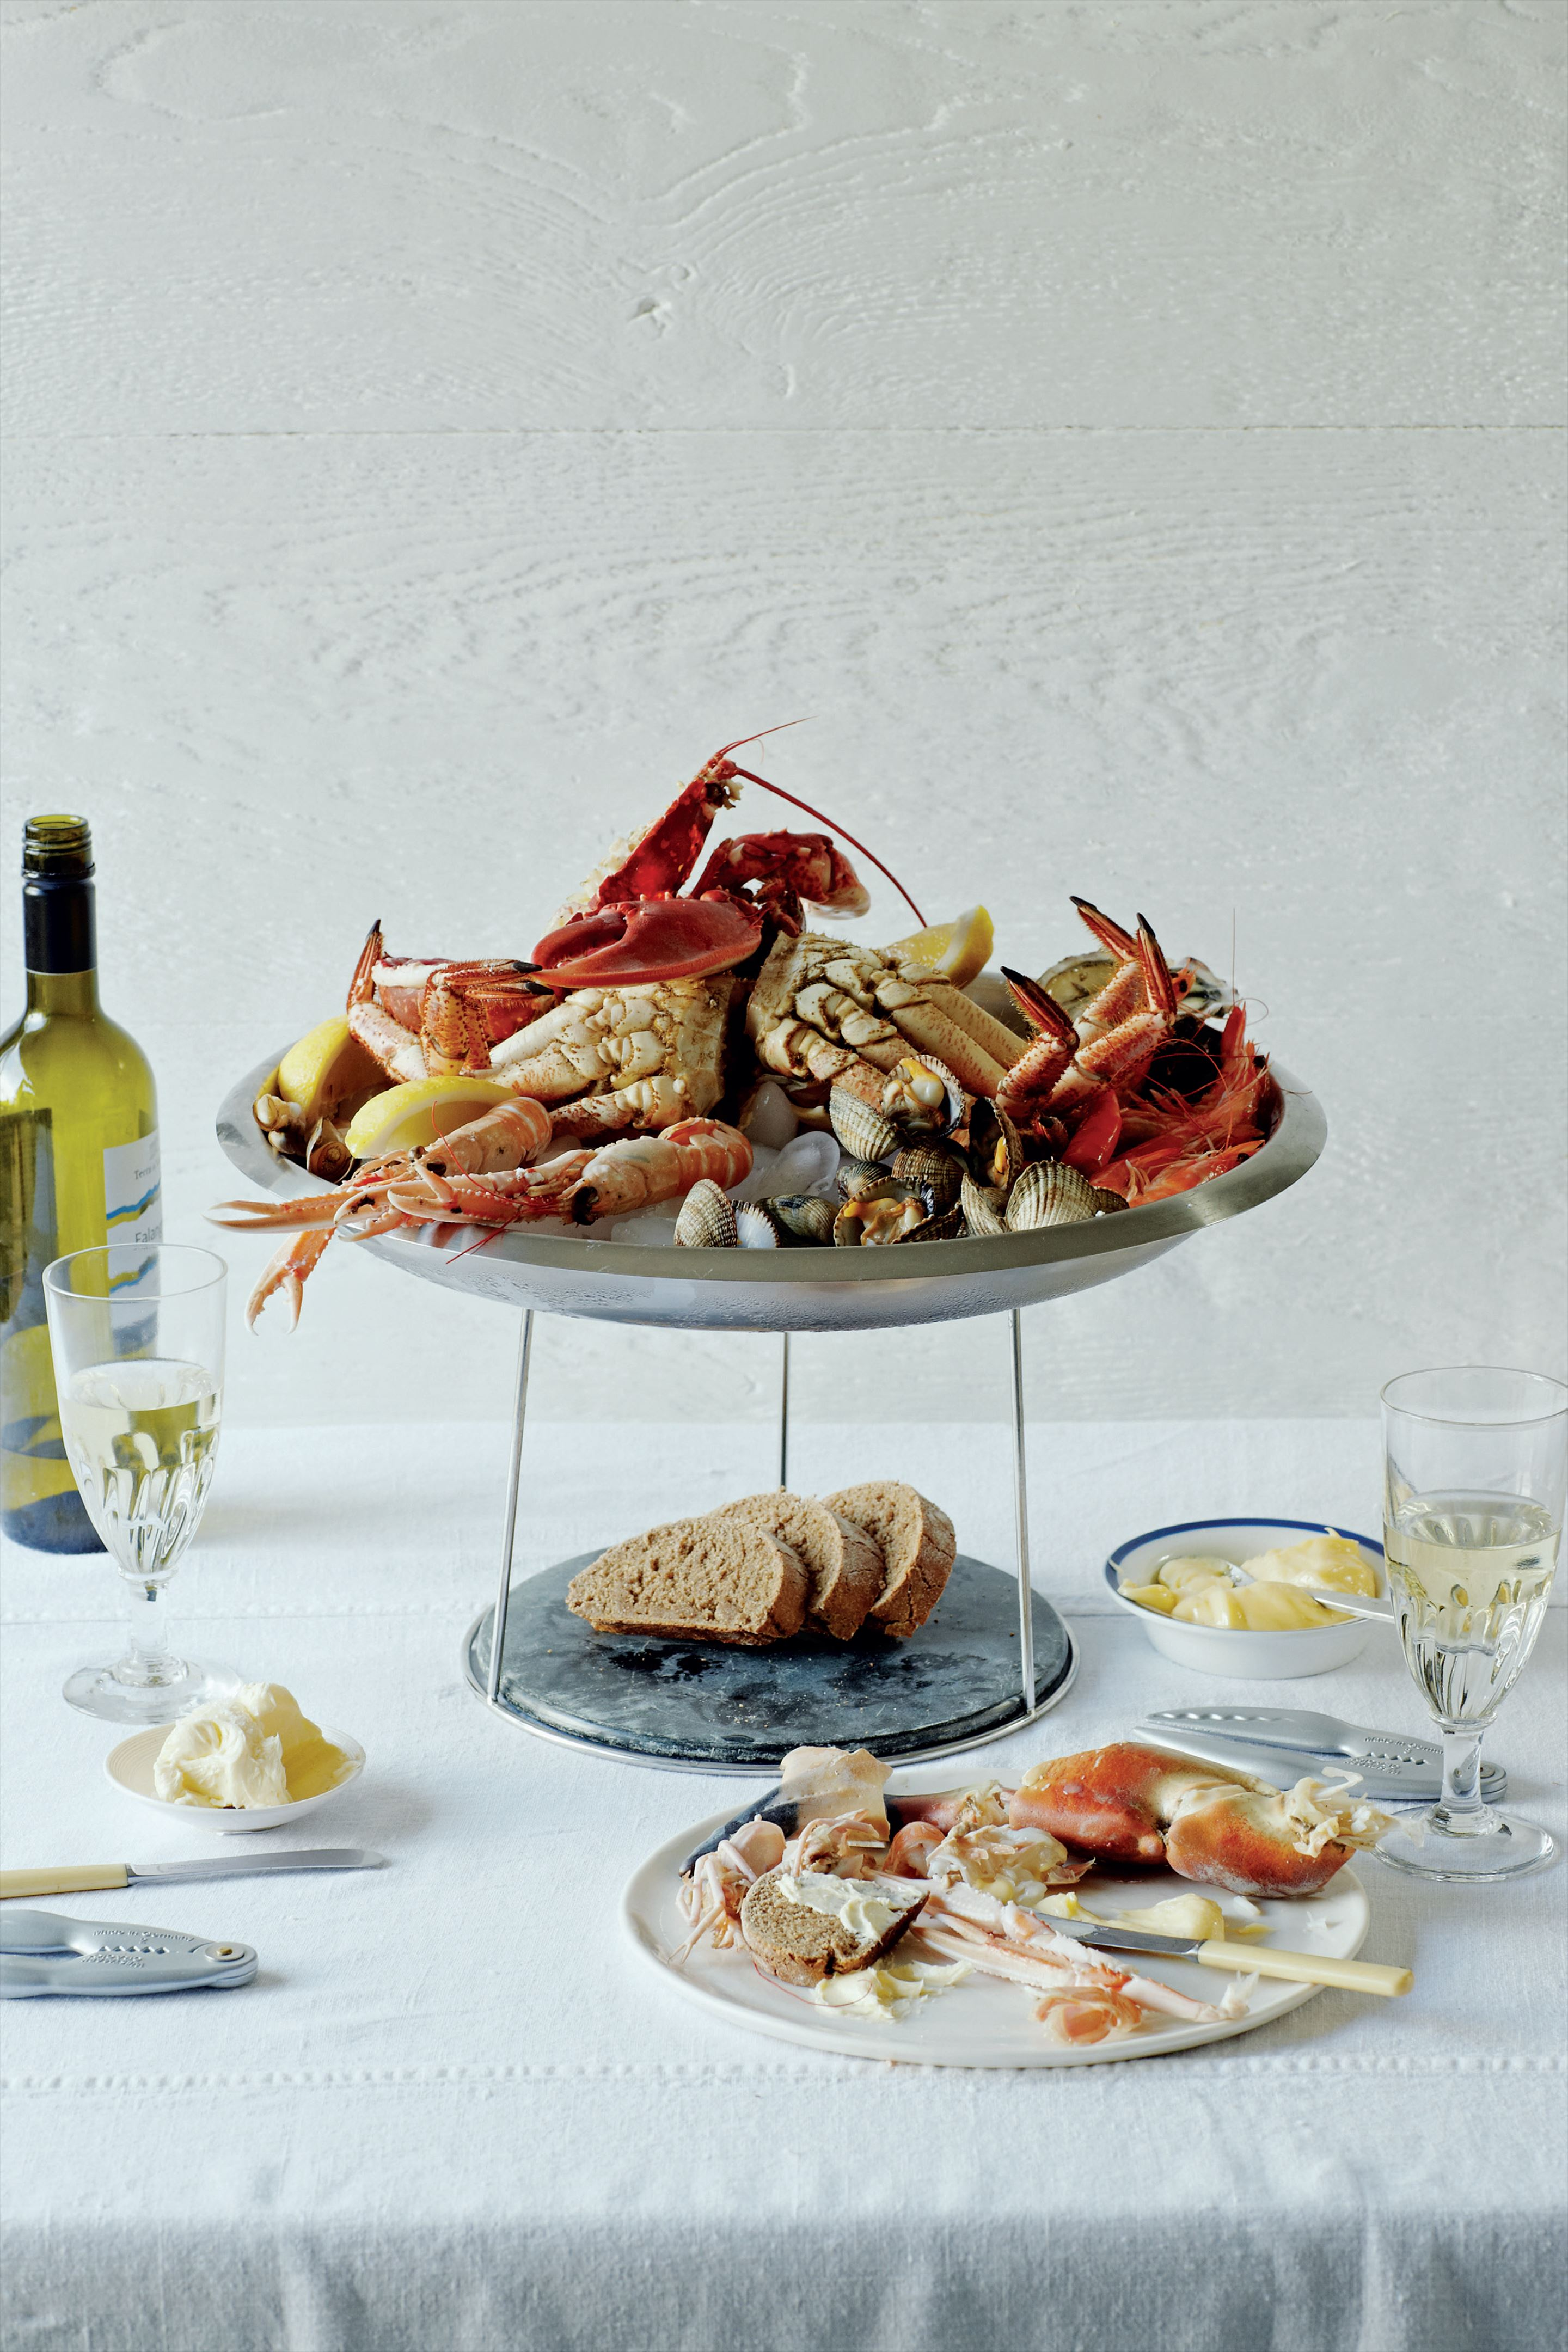 Fruits de mer with home-made rye bread and whipped butter